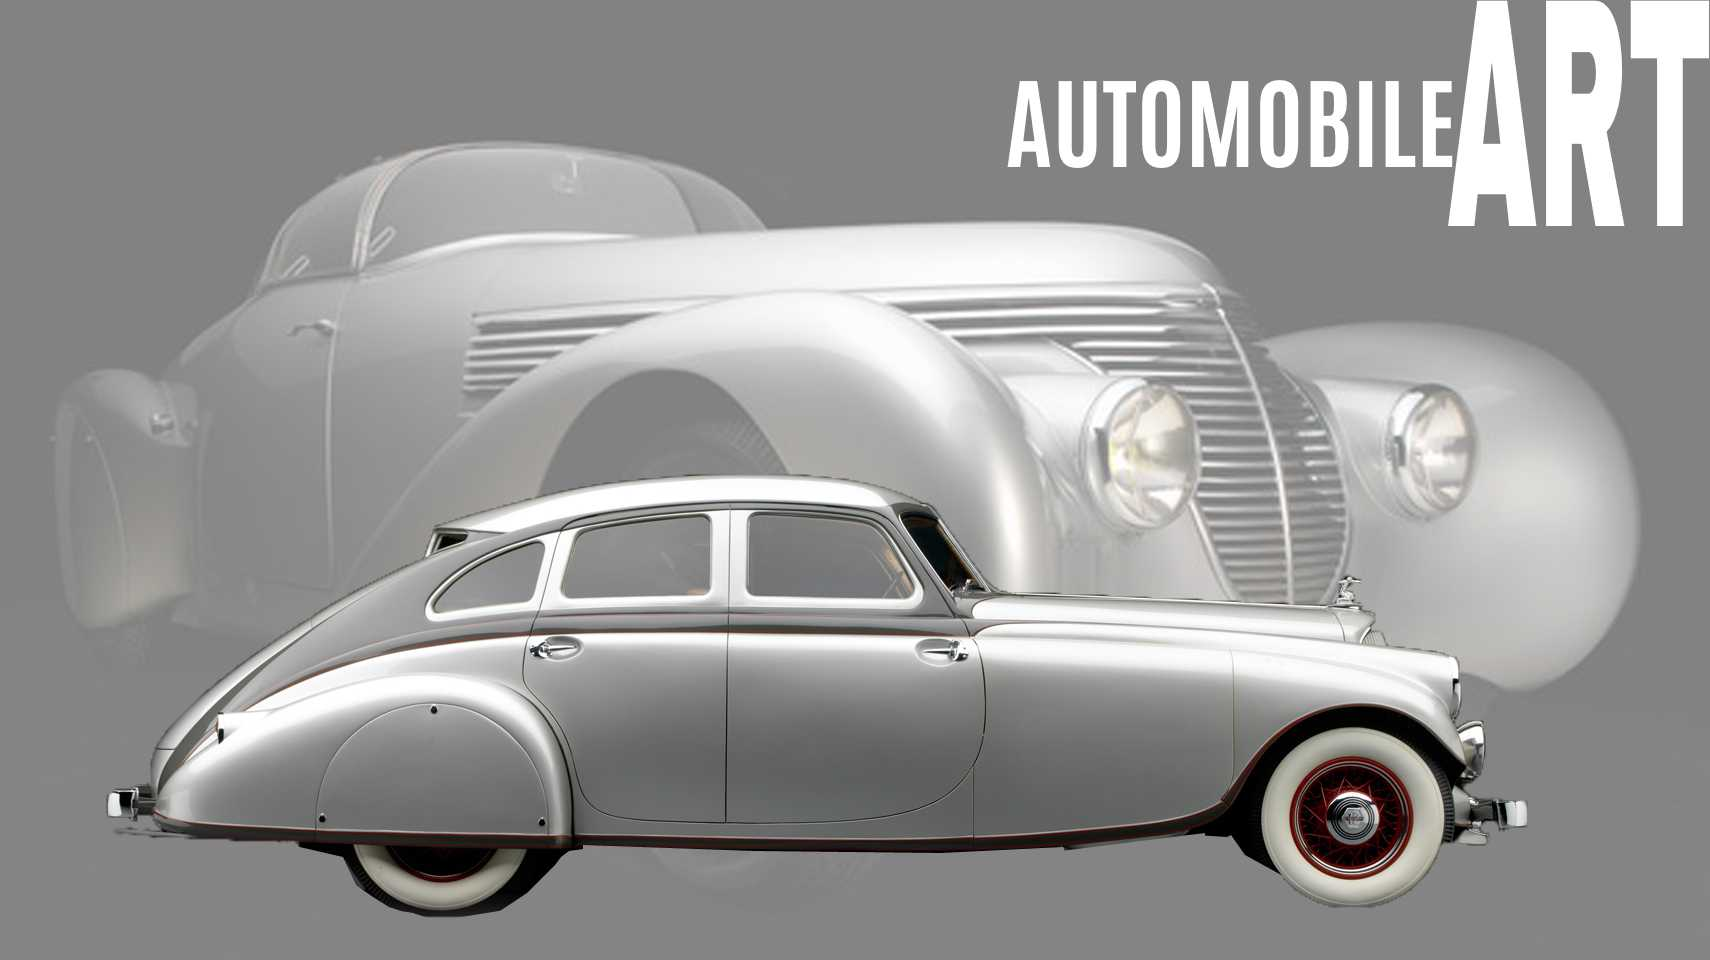 Automotive Design Automobile Art Automotive